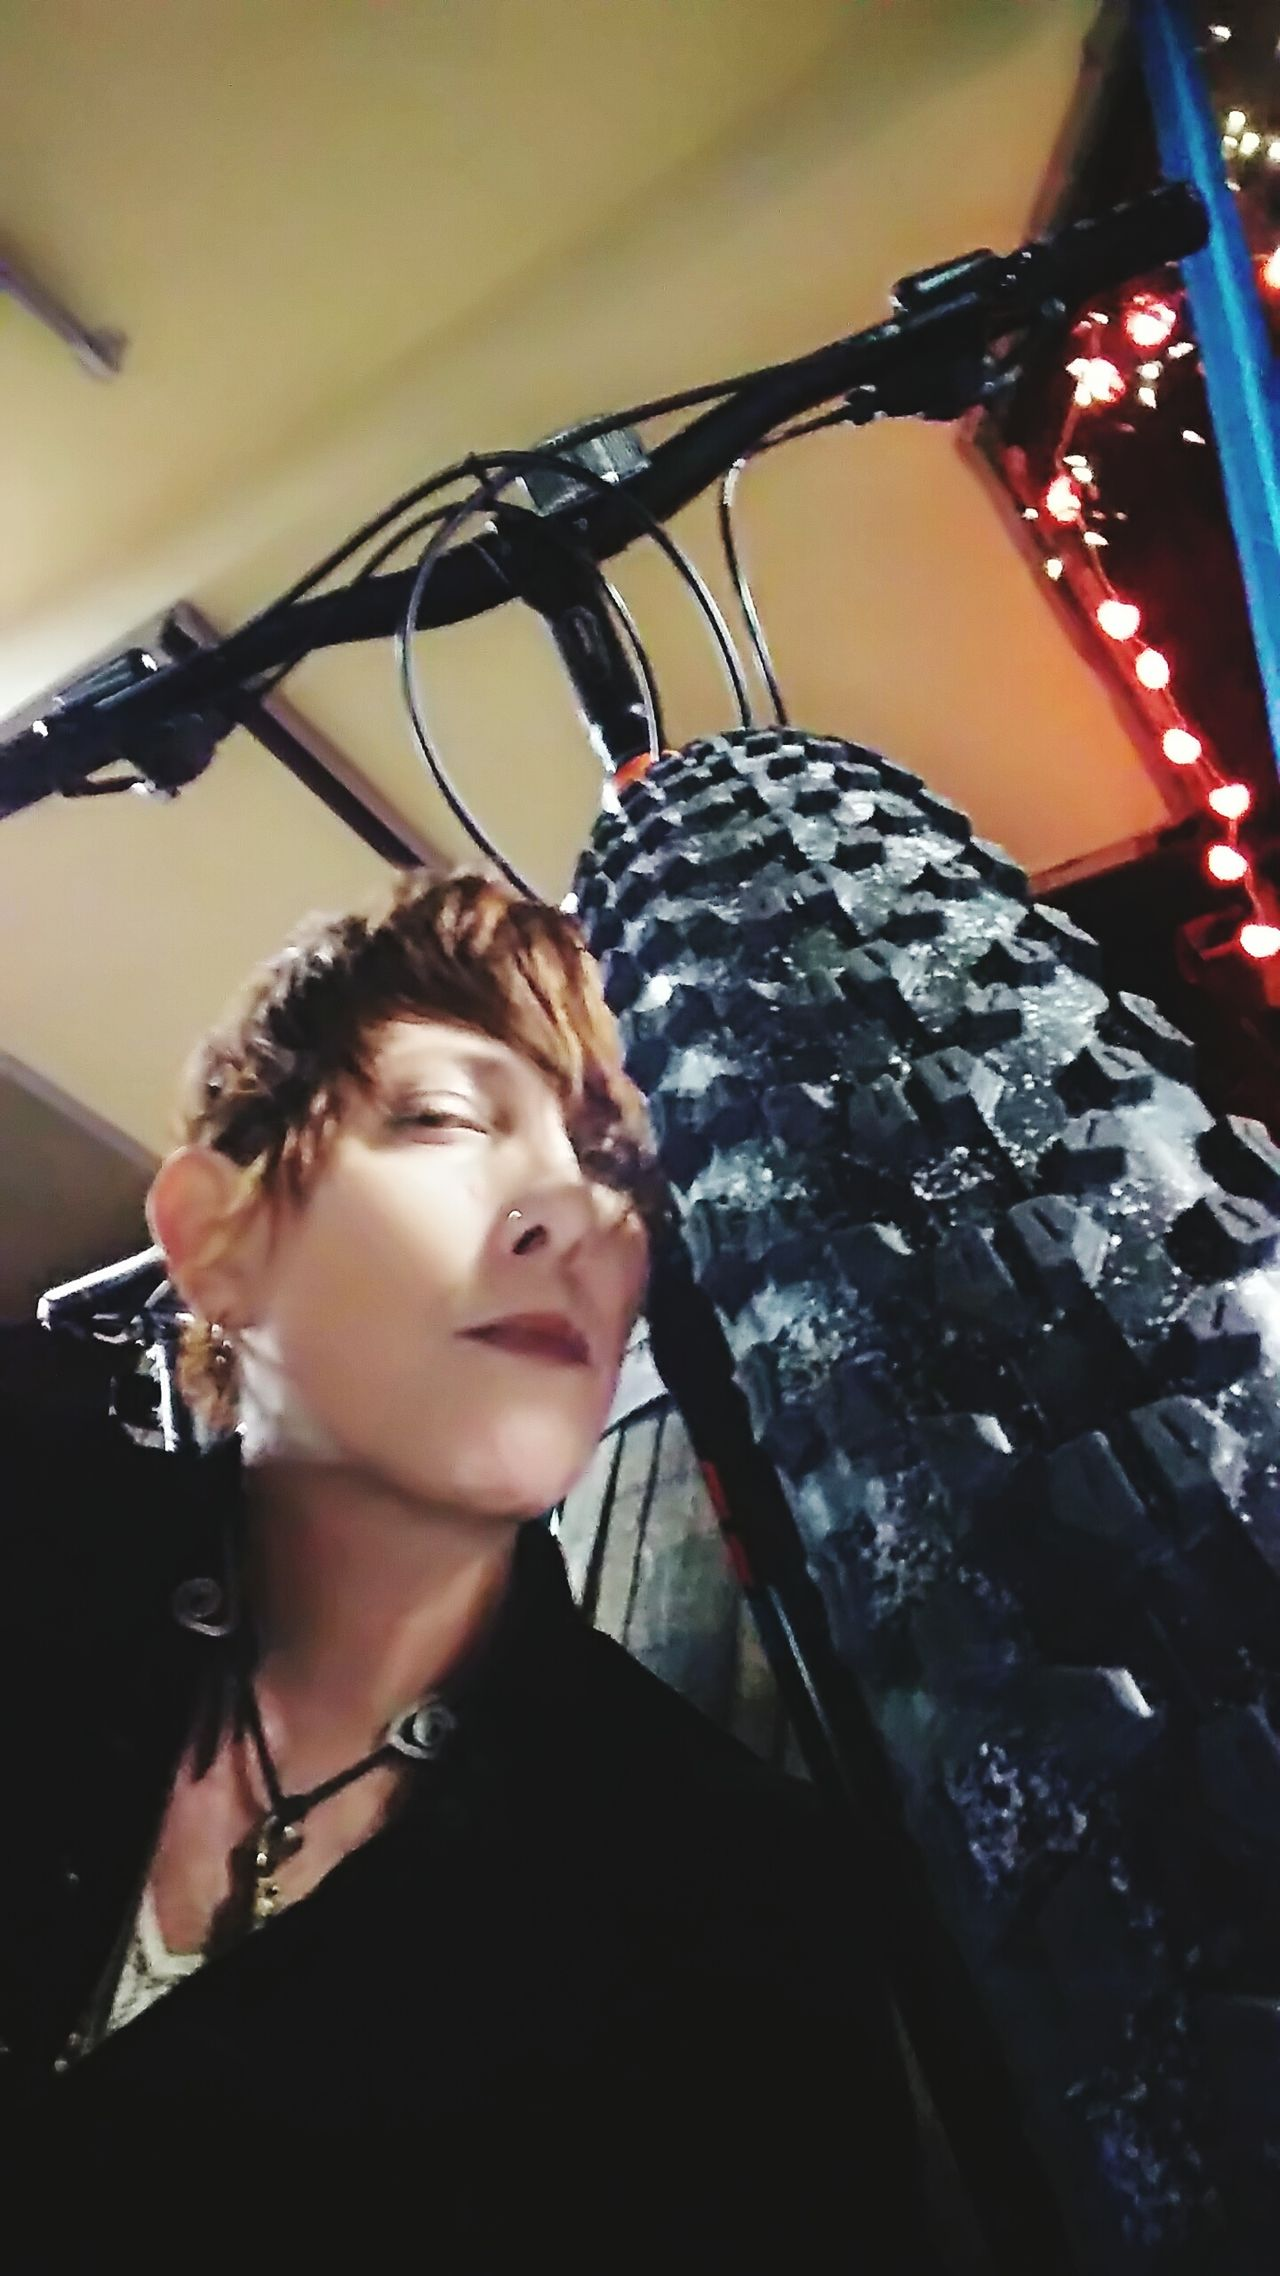 Bike tire One Person People Relaxation Chase Just Being Me Finding New Frontiers Vougemagazine My Year My View Photography Themes Something Different Artistic Expression My Artwork Expressionism Miami Beach Artphotography Fashion Photography Leisure Activity My Face My Self Looking At Camera Close-up One Animal Portrait Headshot Nightlife Backgrounds The City Light